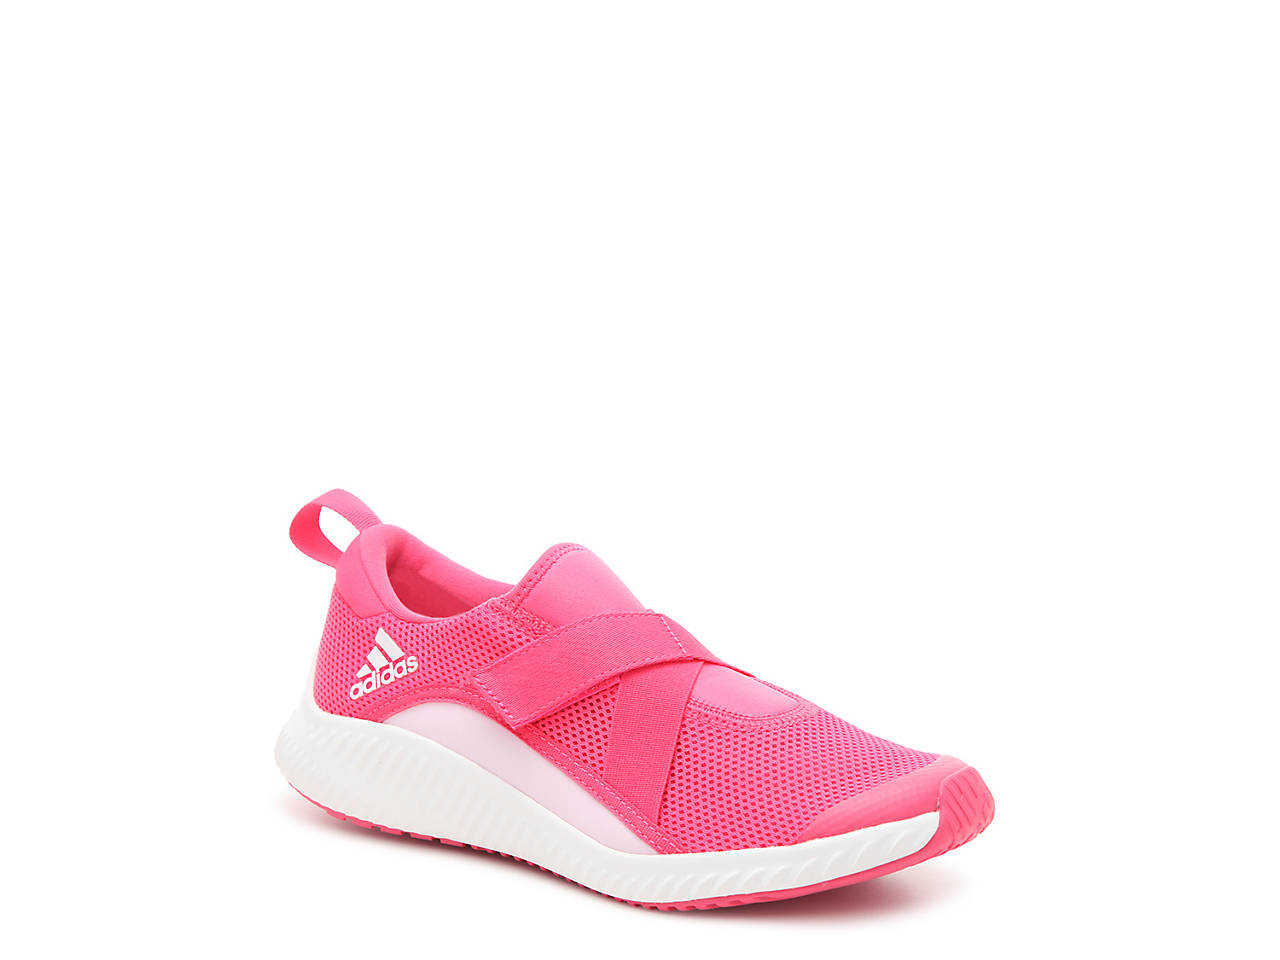 check out c6992 b364d adidas Fortarun x Cloudfoam Toddler  Youth Sneaker Kids Shoe